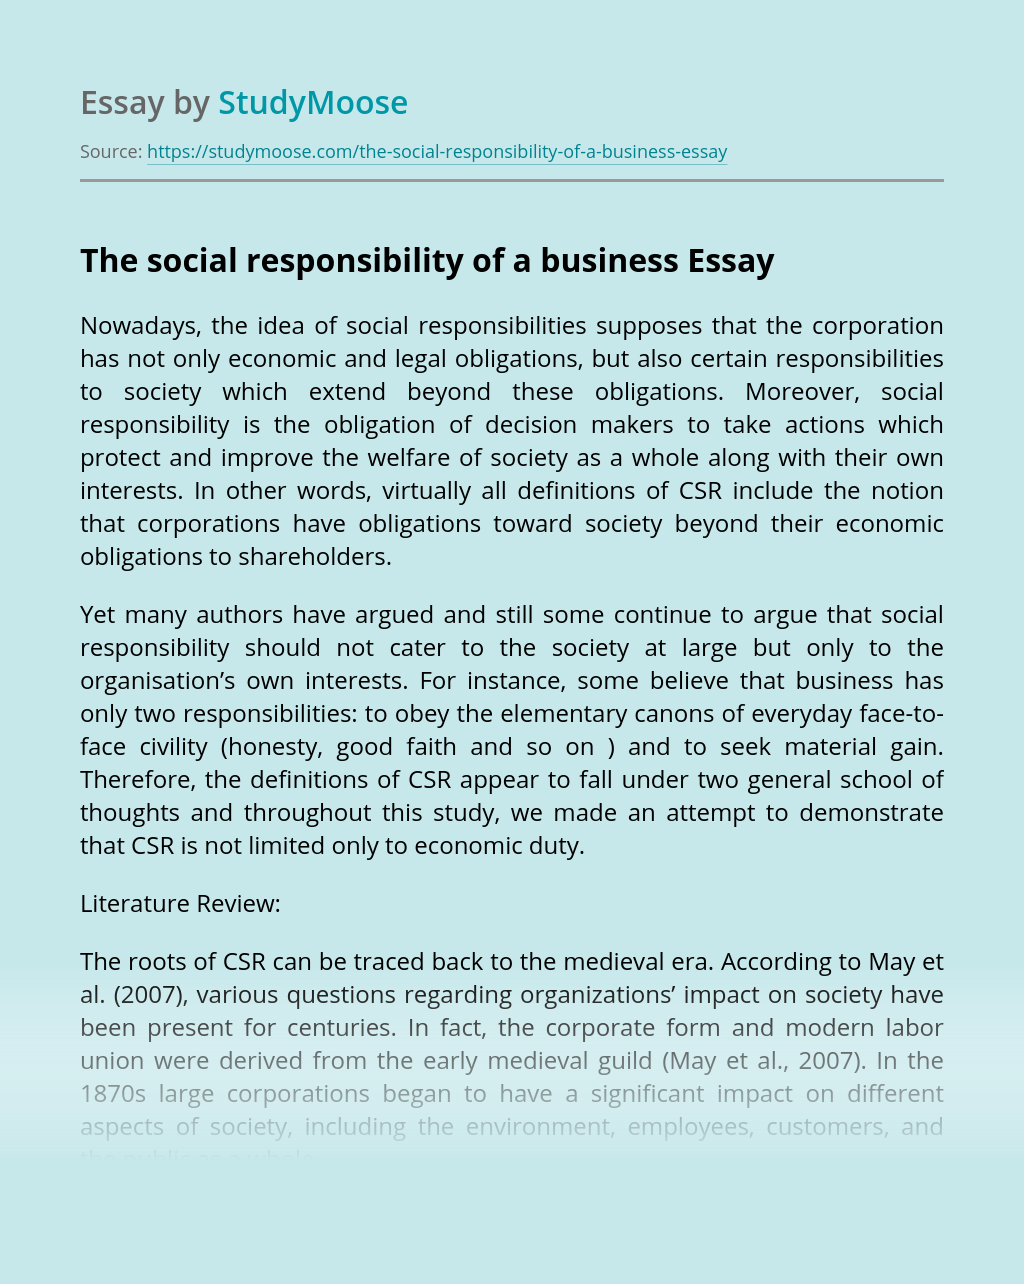 The social responsibility of a business